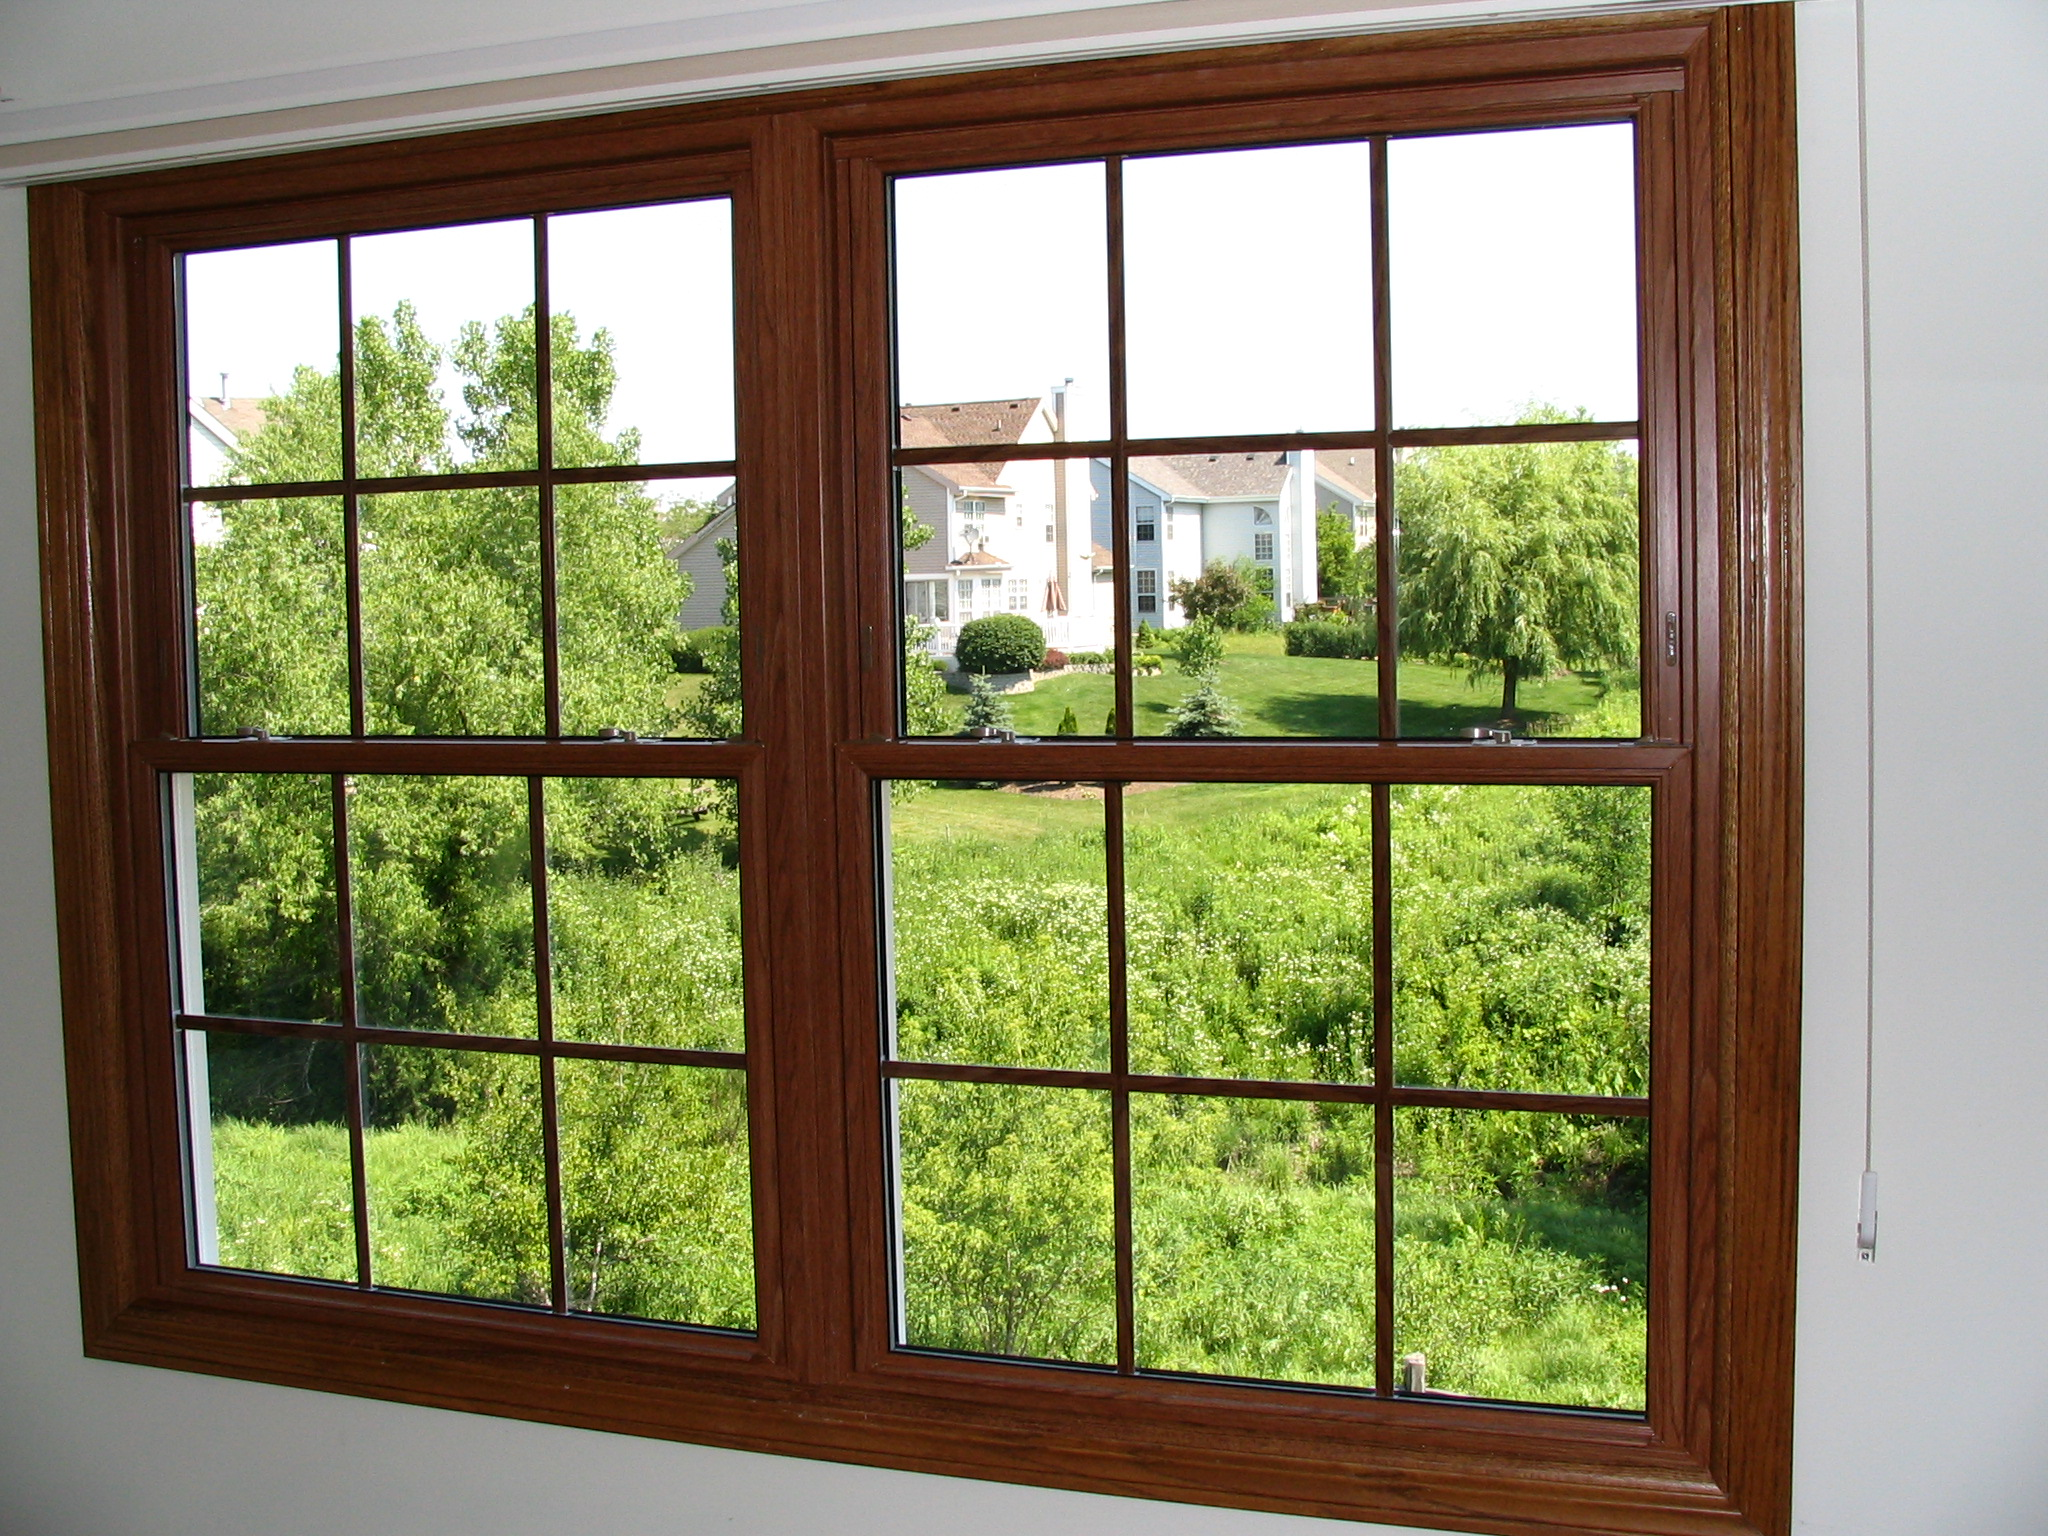 Provincial oak vinyl double hung windows custom built for Double hung window